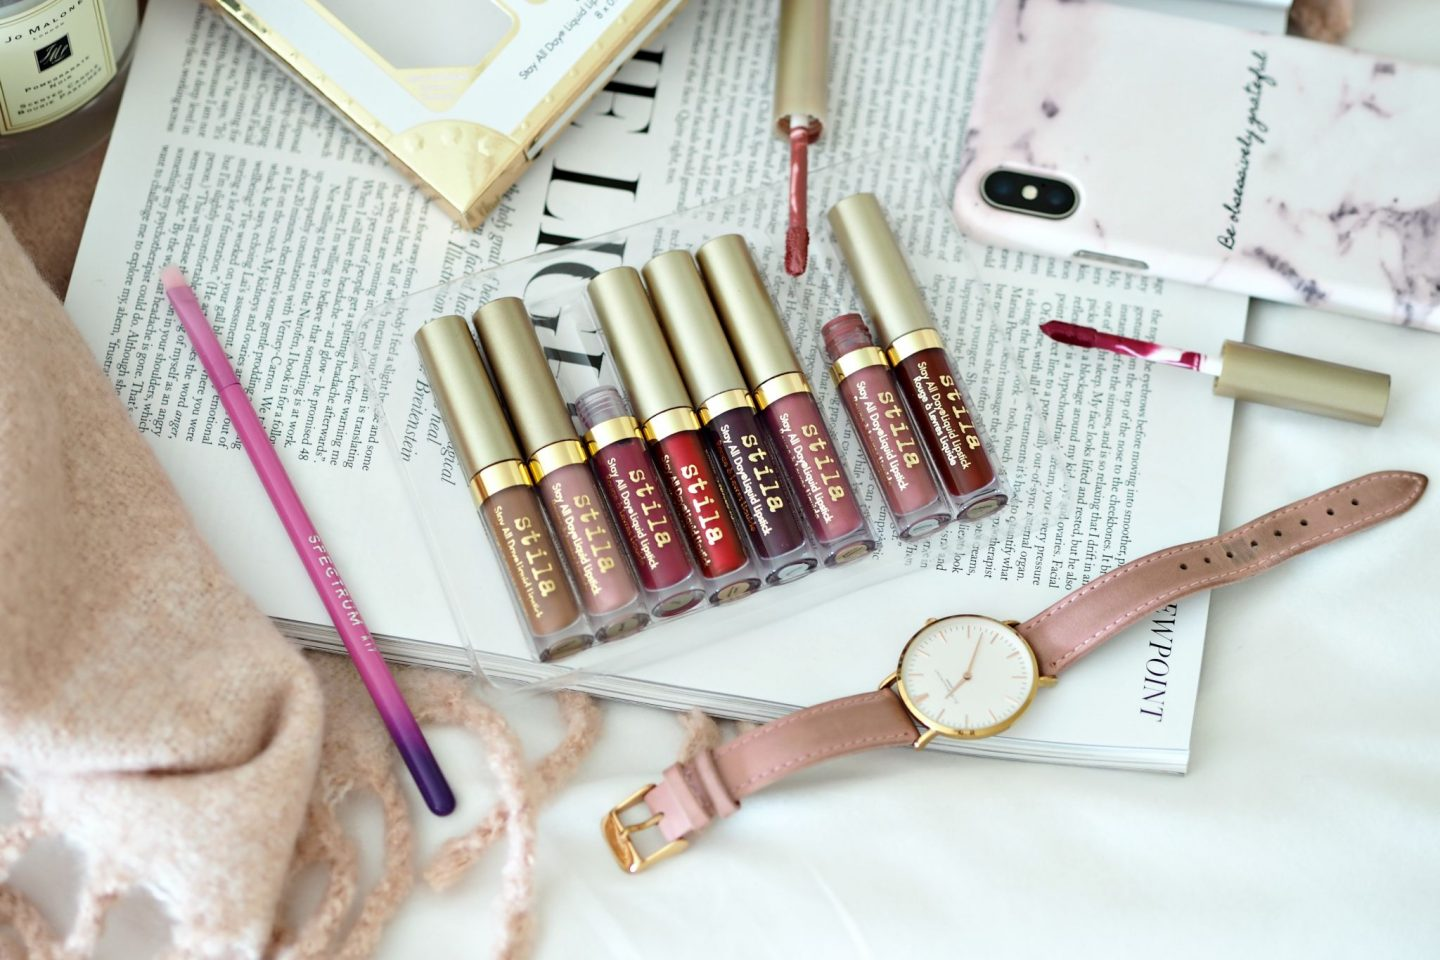 Stila Stay All Day Liquid Lipsticks